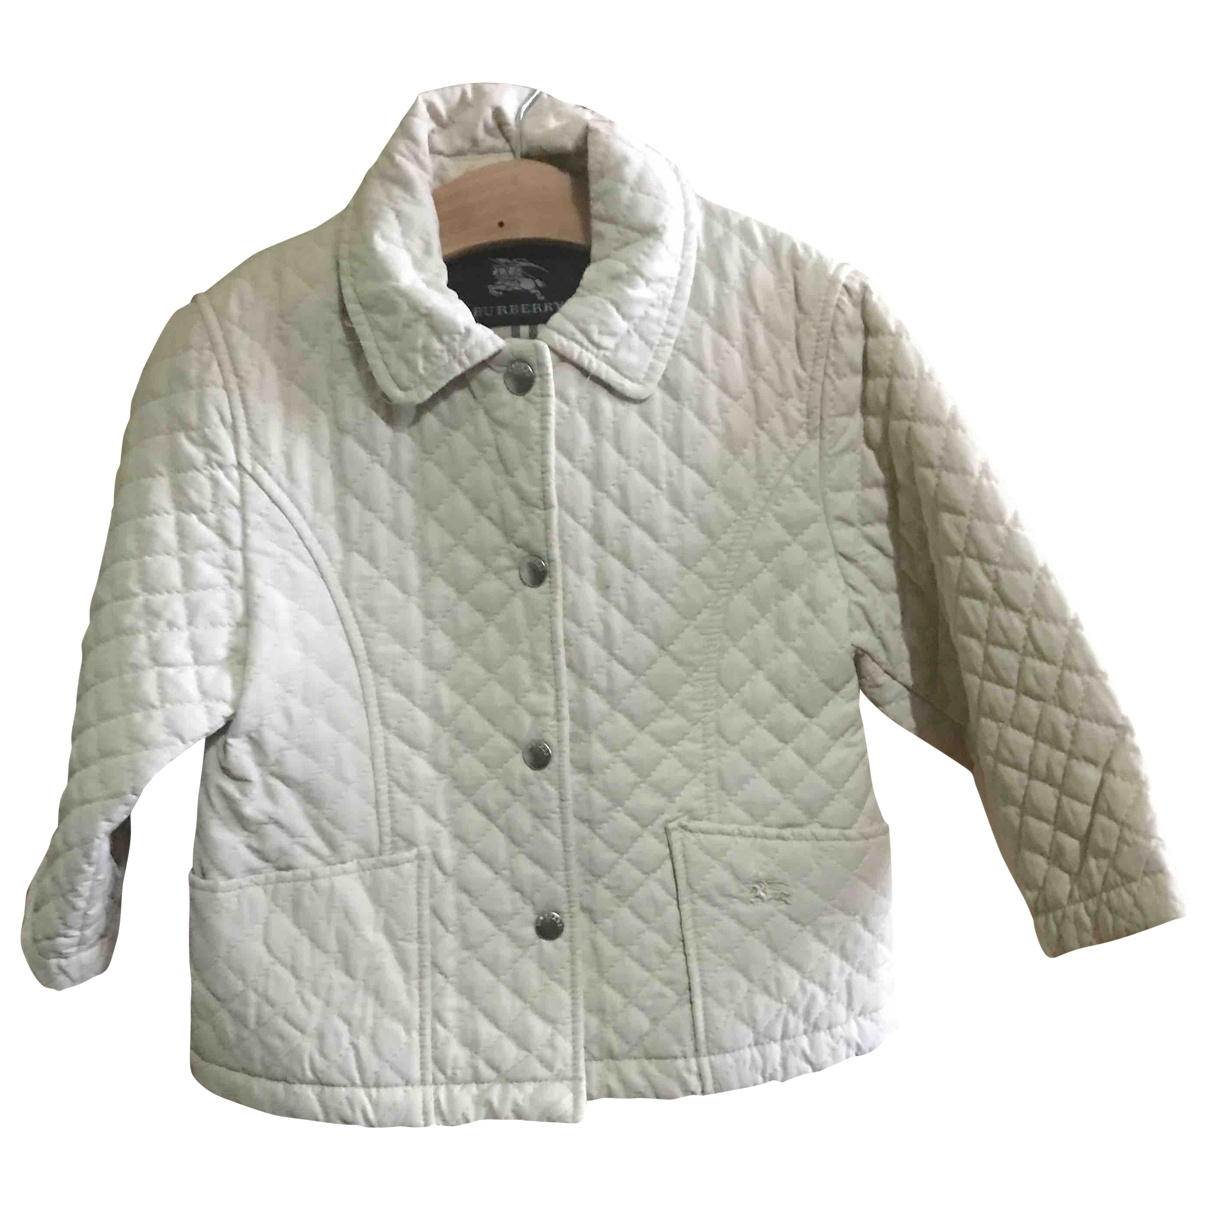 Burberry \N Beige Cotton jacket & coat for Kids 2 years - until 34 inches UK